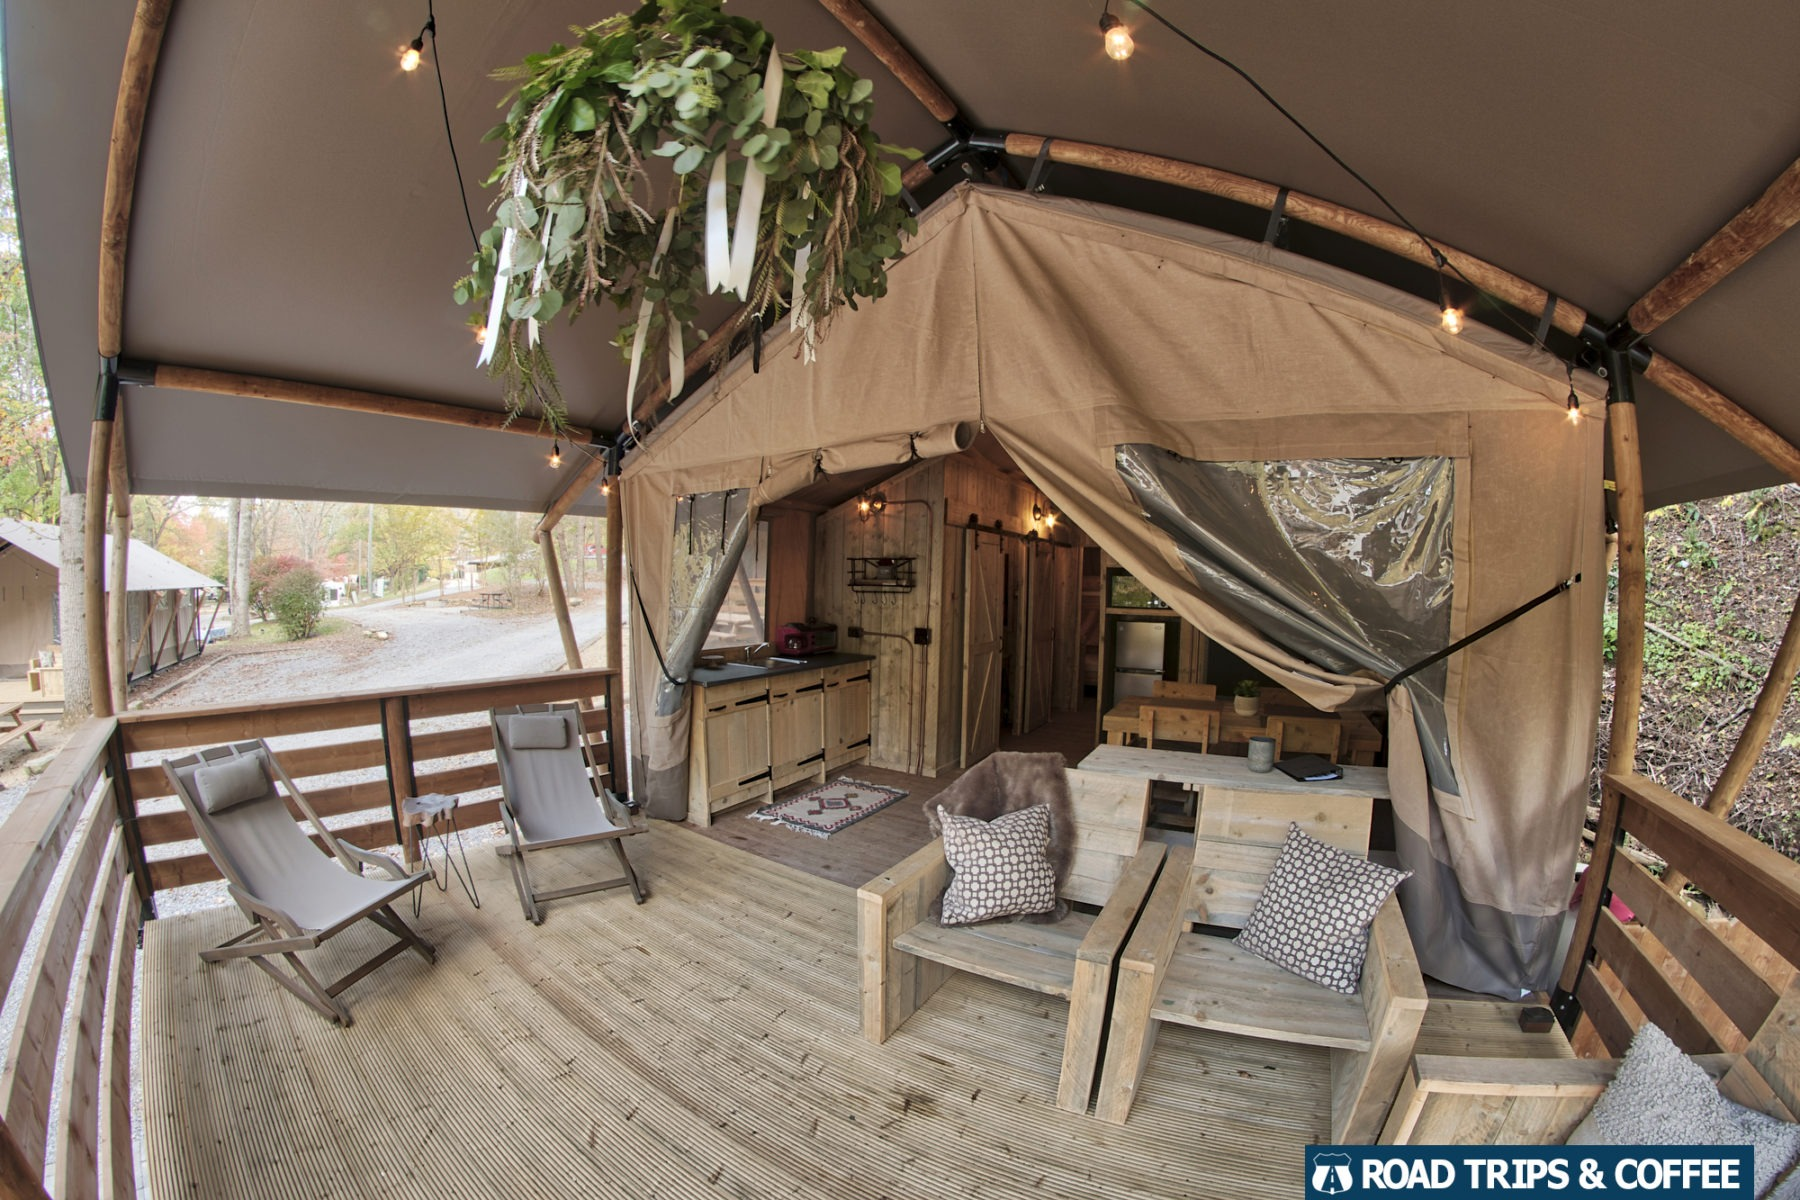 Covered front deck with wooden furniture at a glamping tent at Little Arrow Outdoor Resort in Townsend, Tennessee